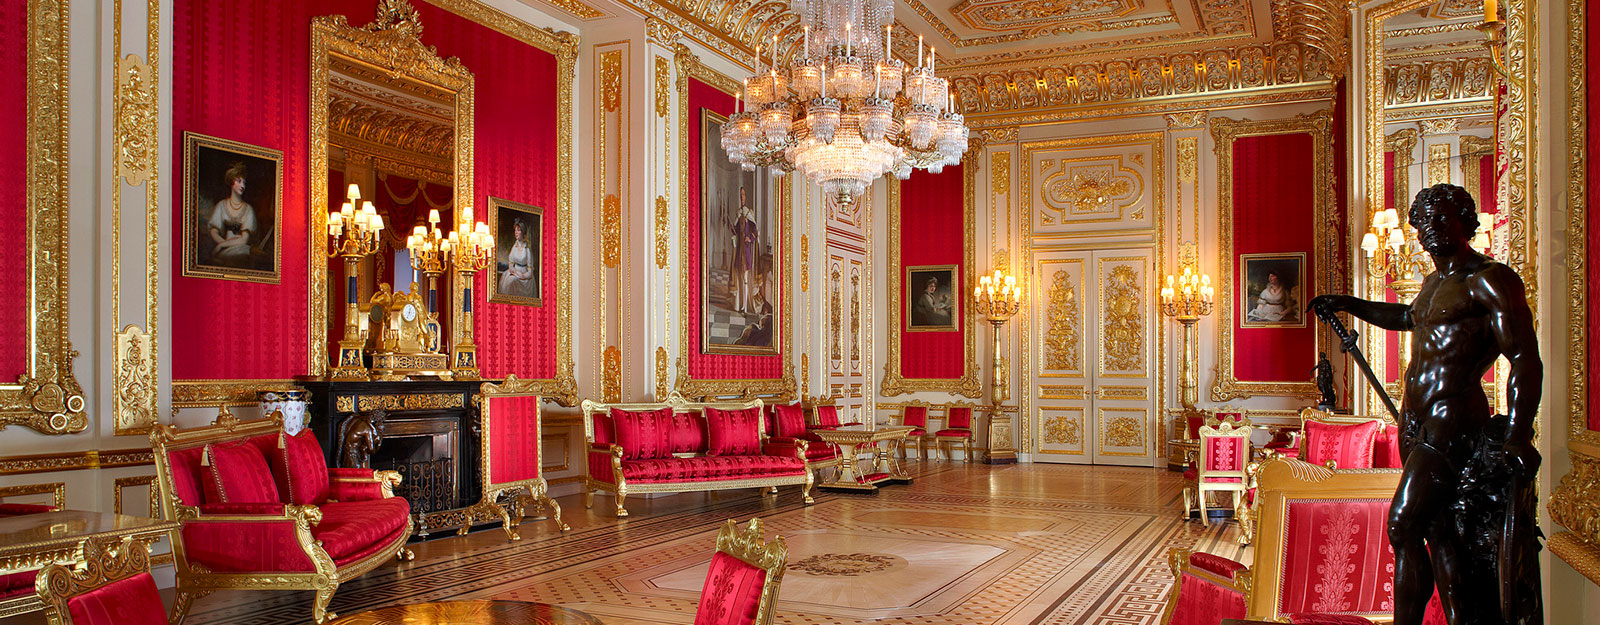 A view of the Crimson Drawing Room at Windsor Castle